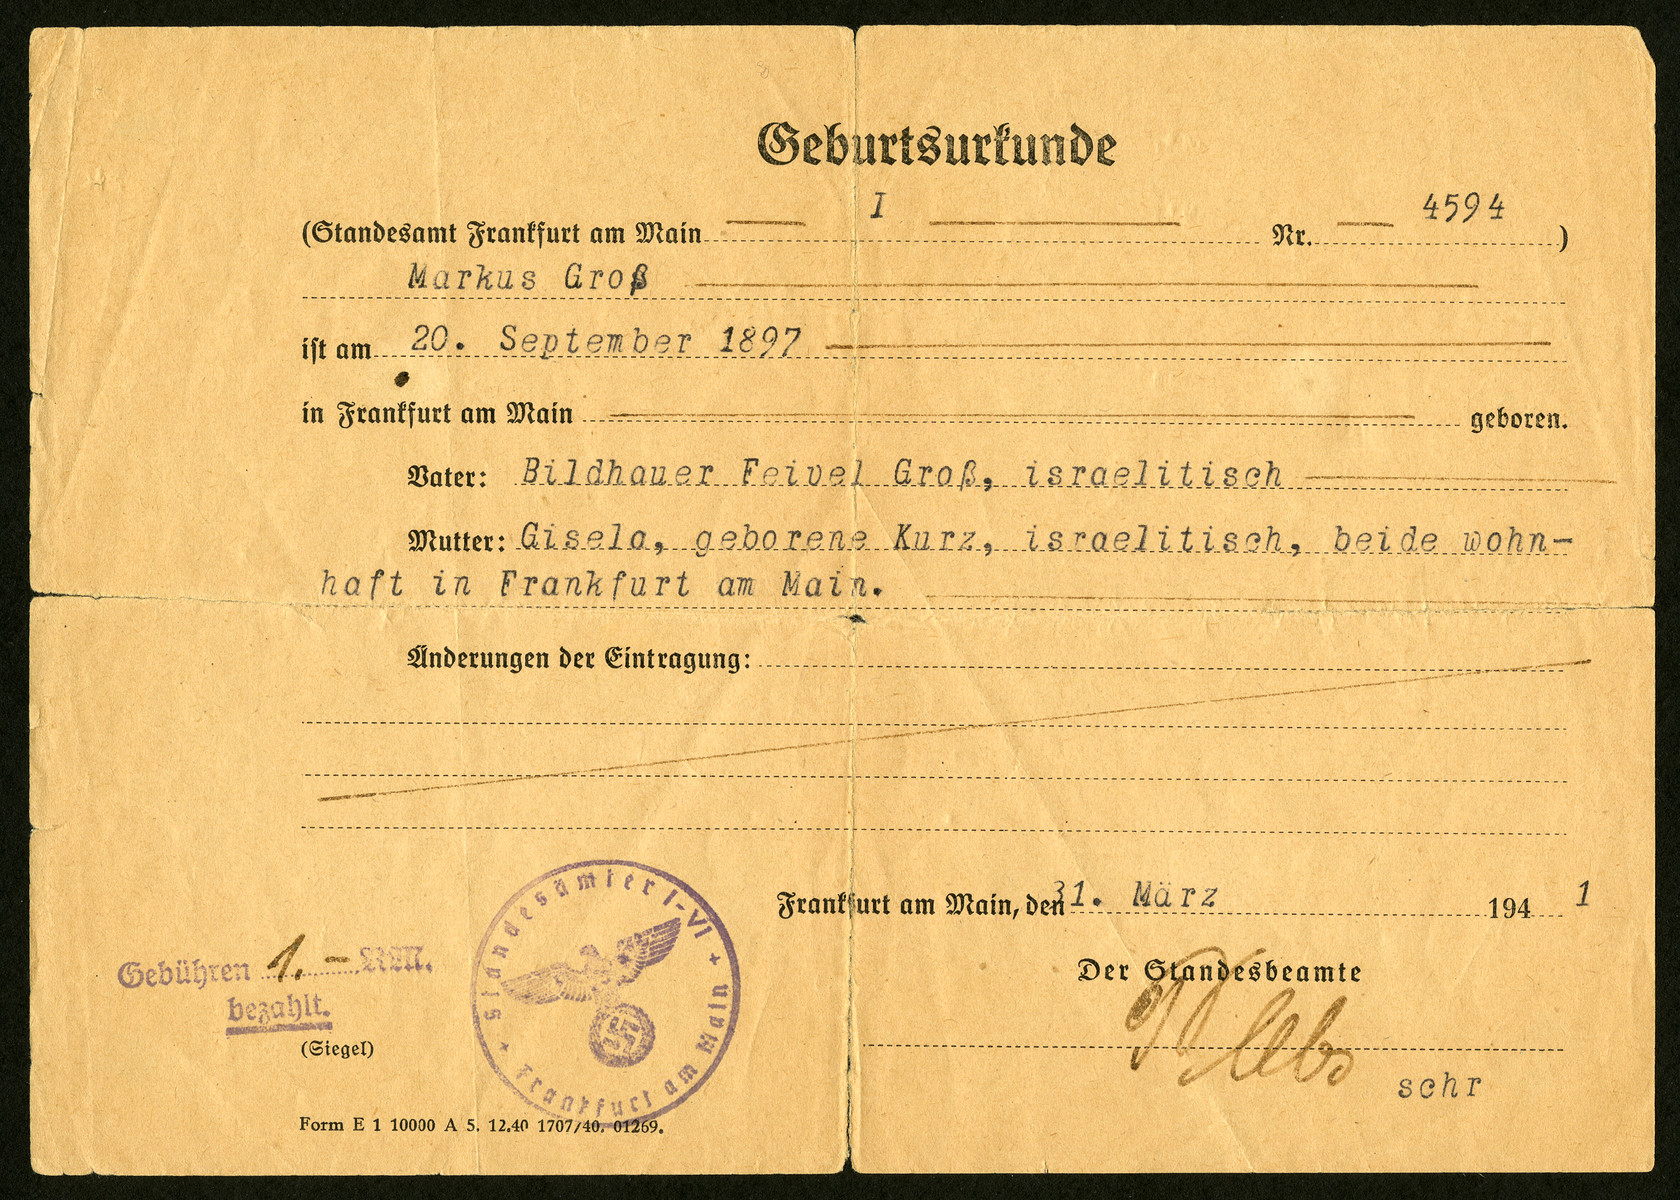 The birth certificate of Markus (Max) Gross.